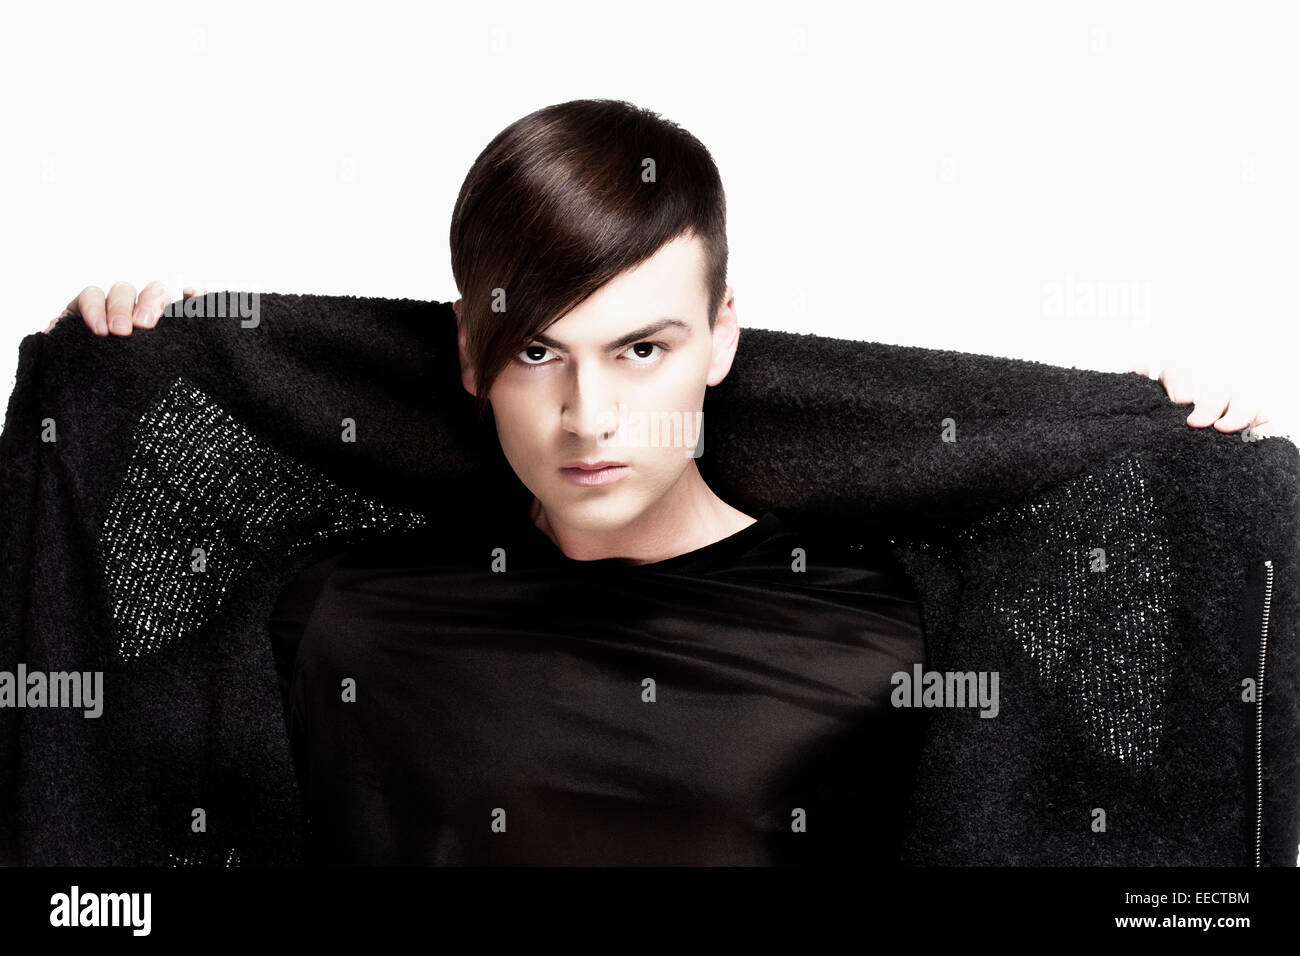 Portrait of a Young Man with Trendy Haircut - Isolated on White - Stock Image